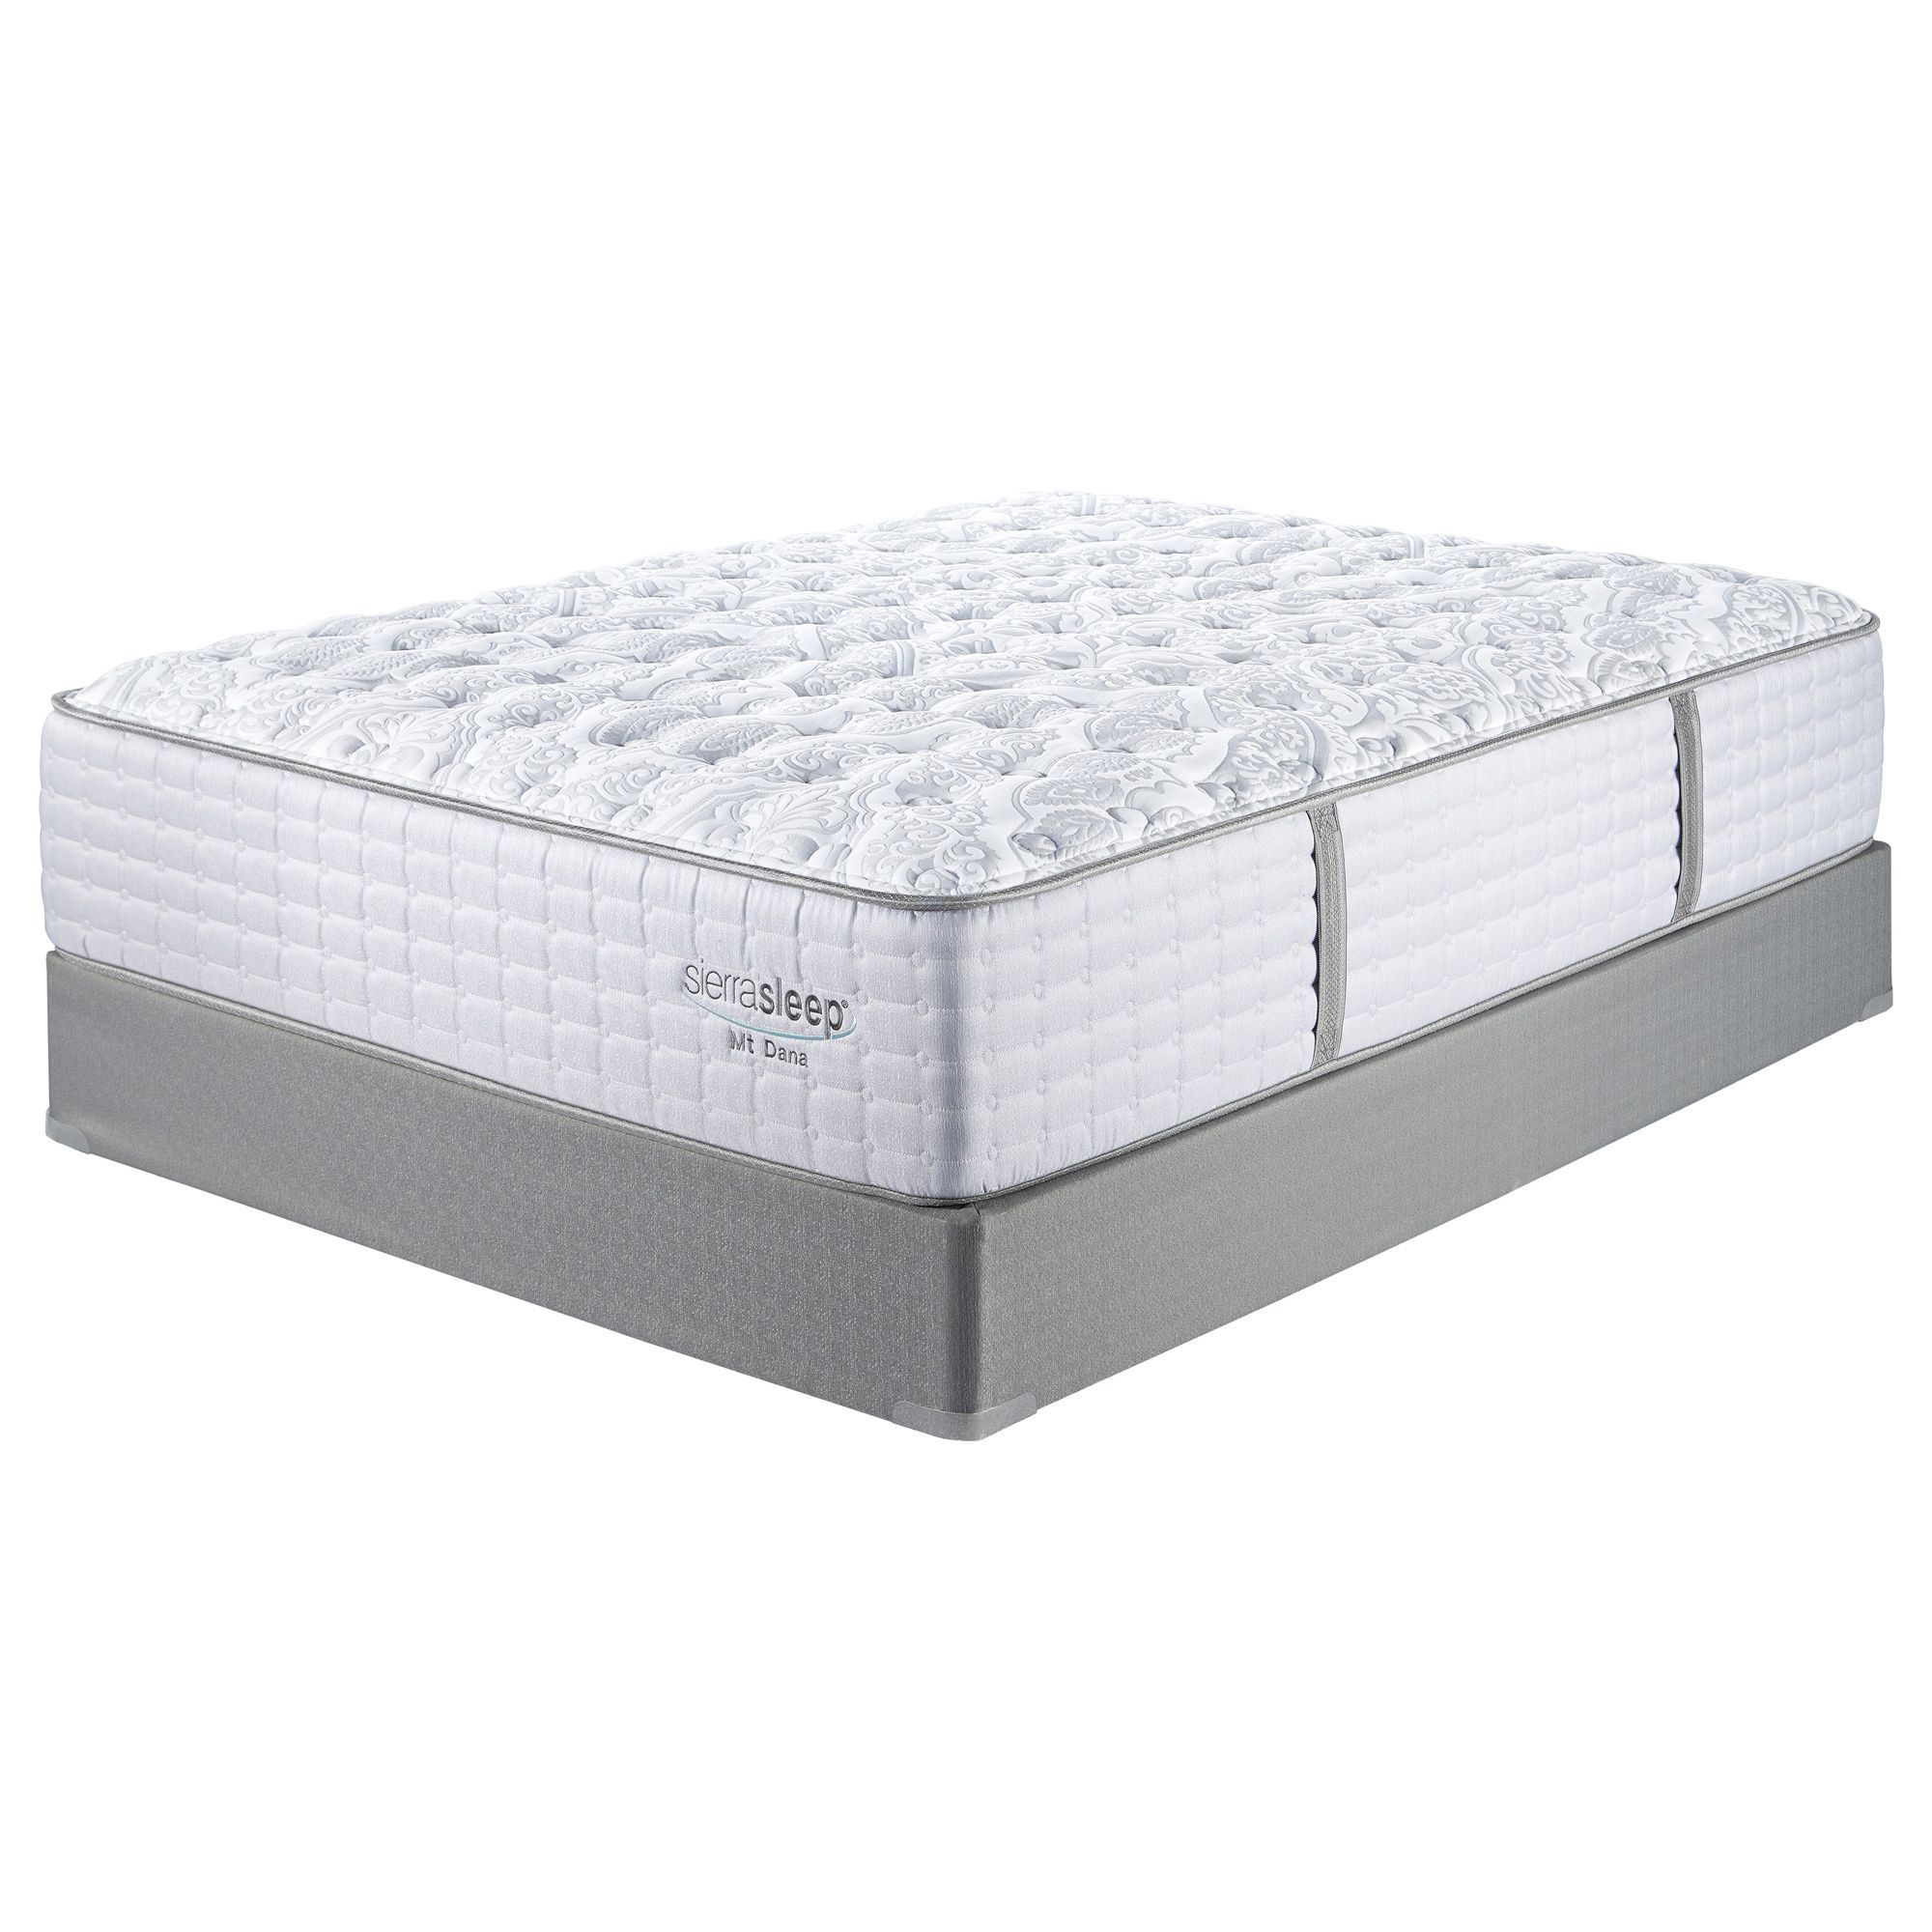 mattress firm pa freestanding ricky inventory bloomsburg retail avenue with outlet investment listing pennsylvania logo